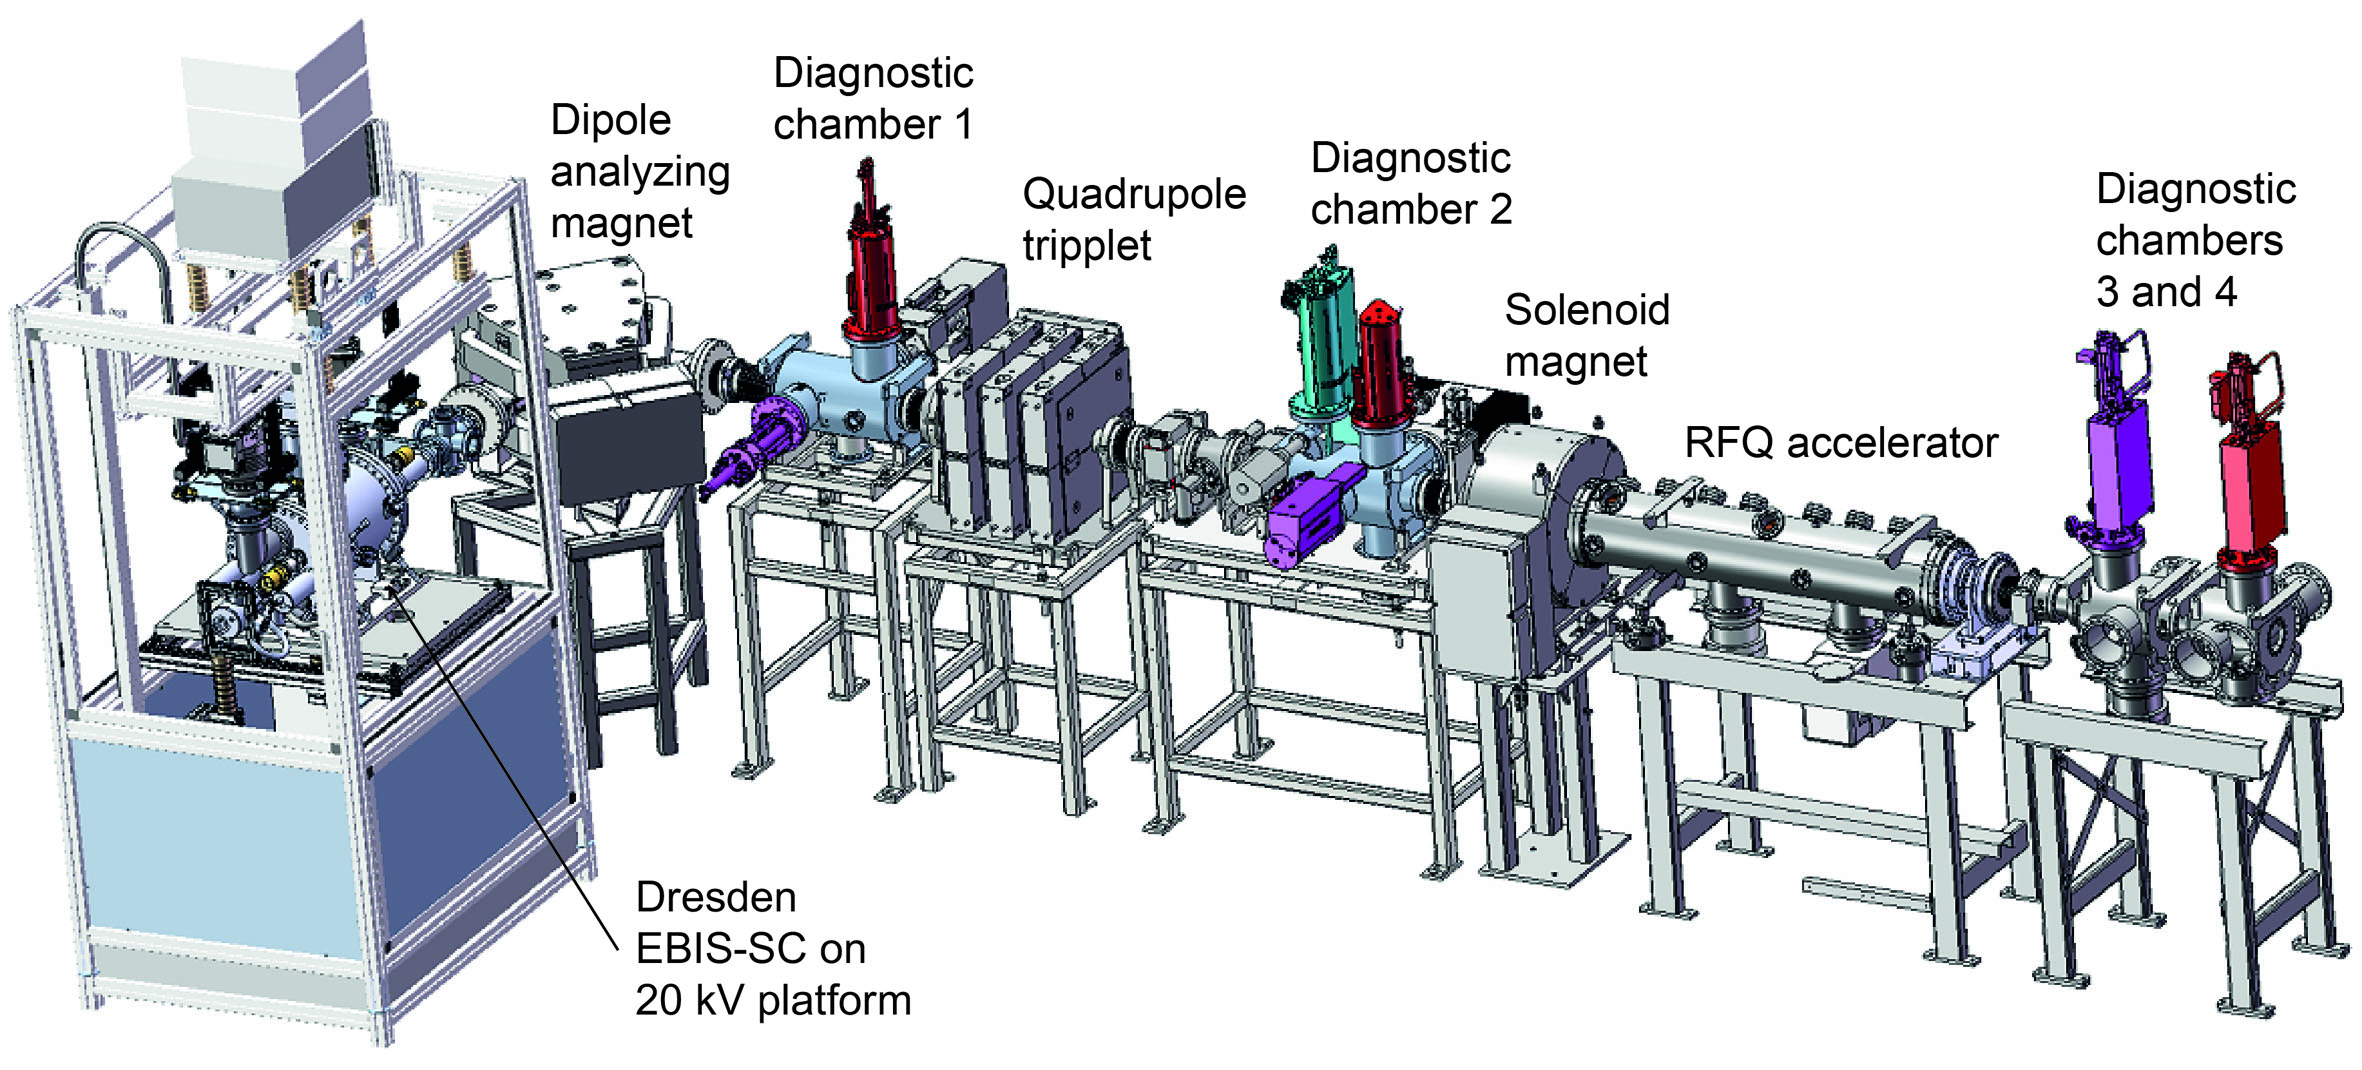 Figure 11 - The Dresden EBIS-SC installed at the HIT ion source test bench